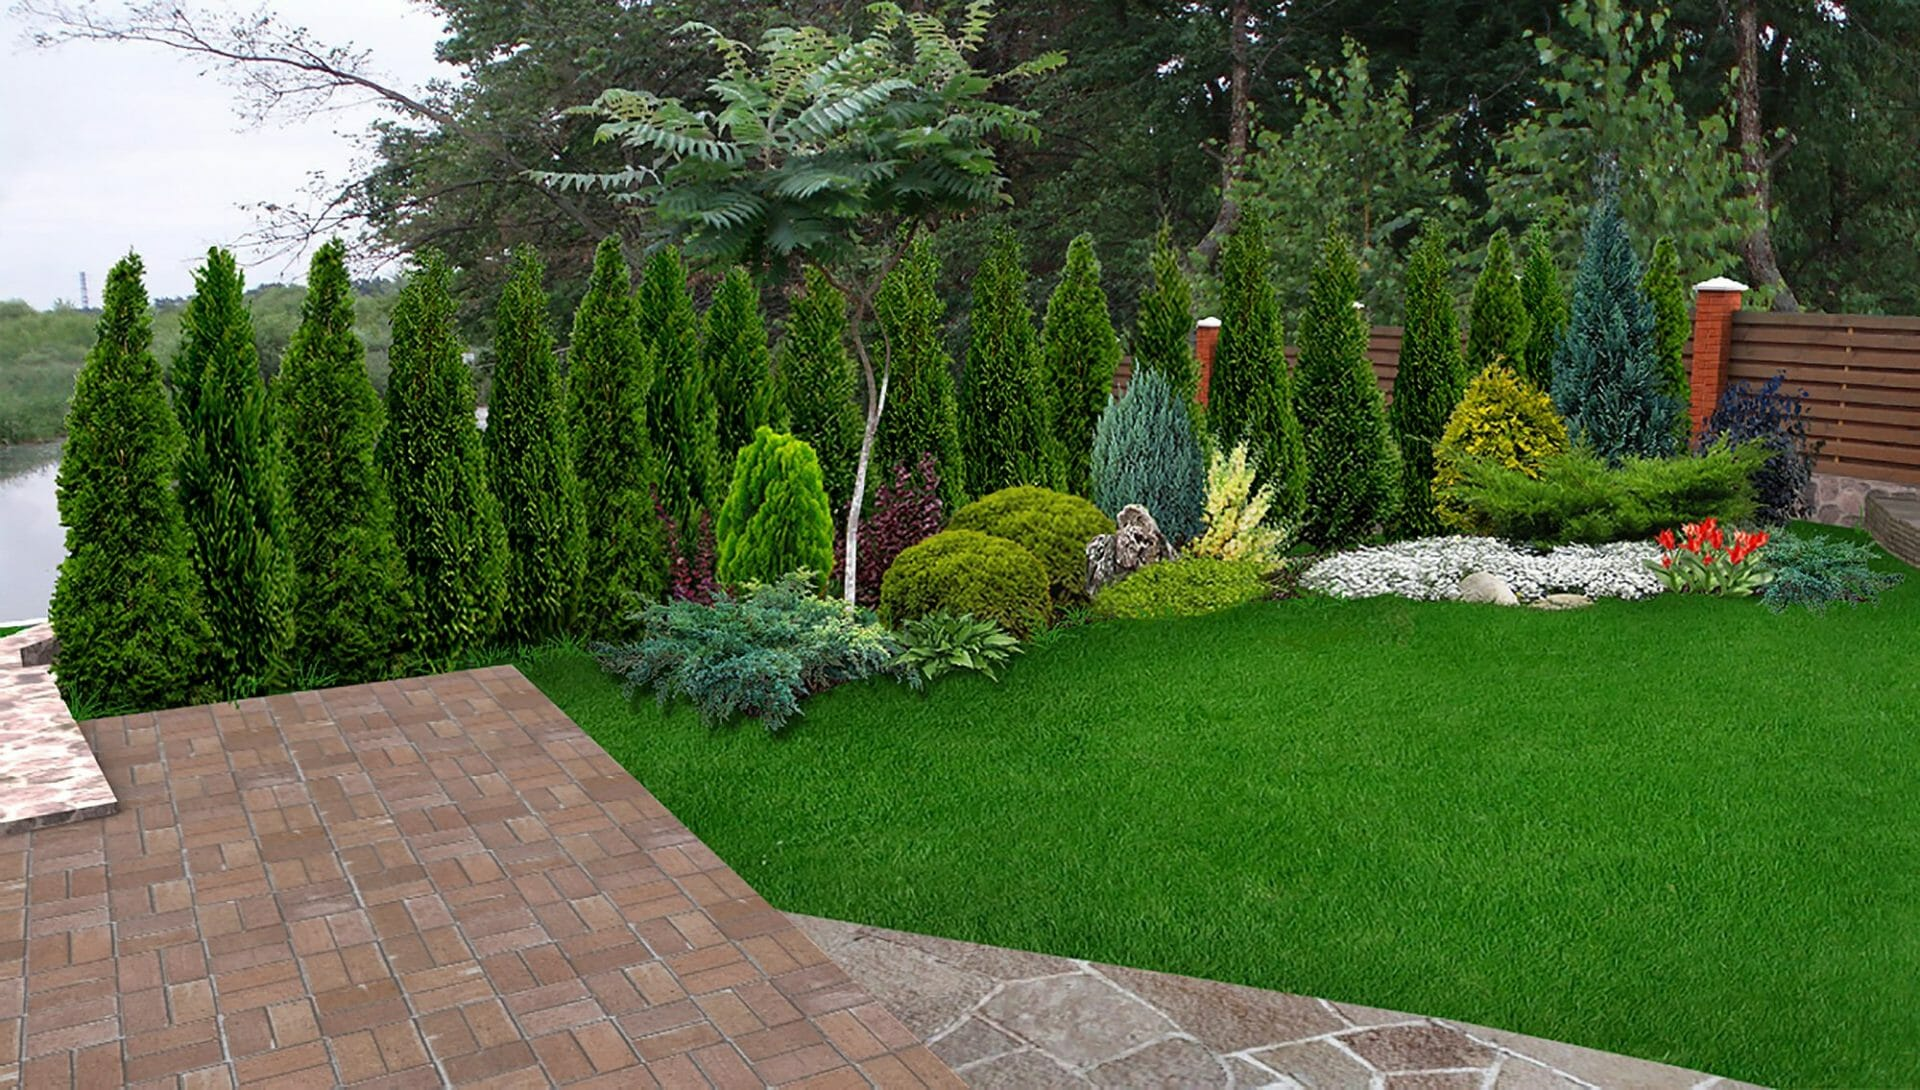 Design of backyard with privacy shrubs creating a landscape privacy screen